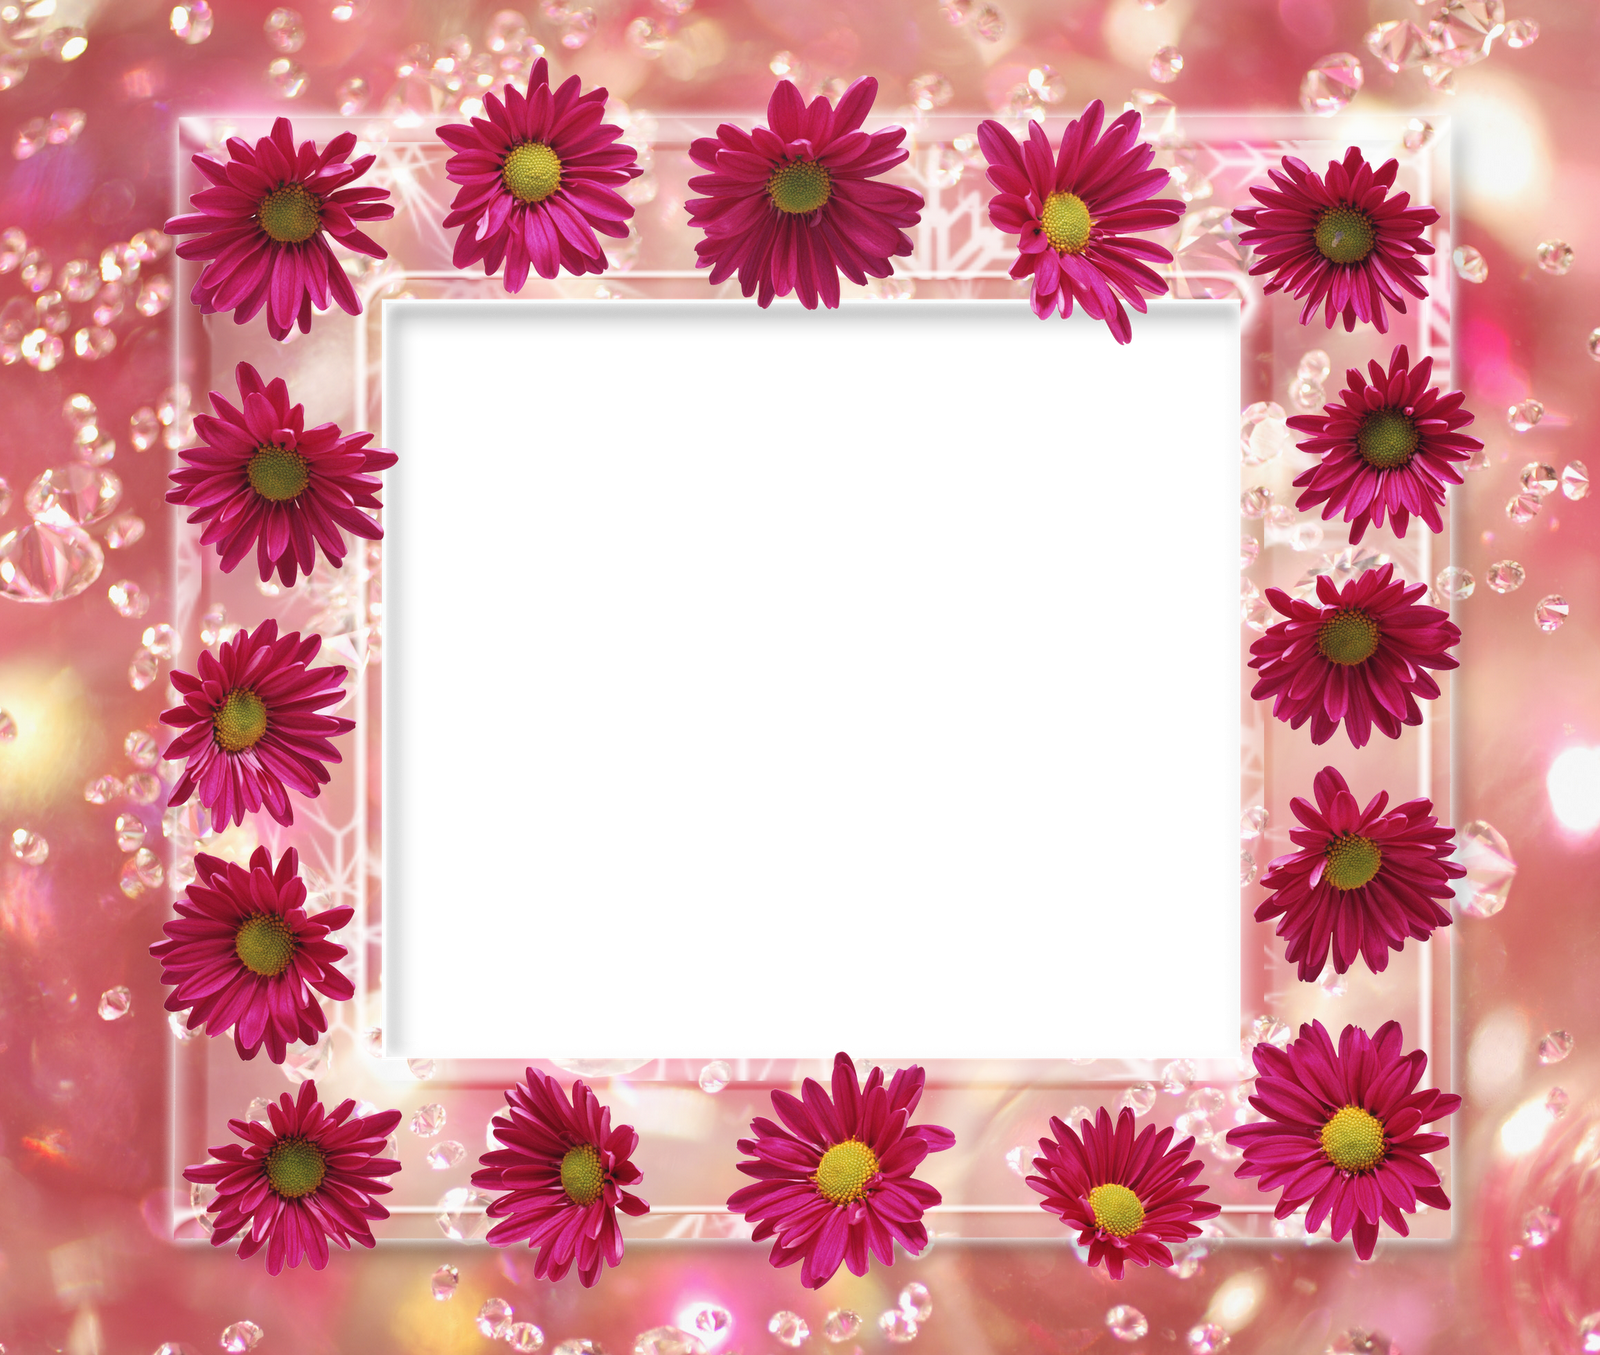 Png Frames For Photoshop Free Download Transparent & PNG Clipart